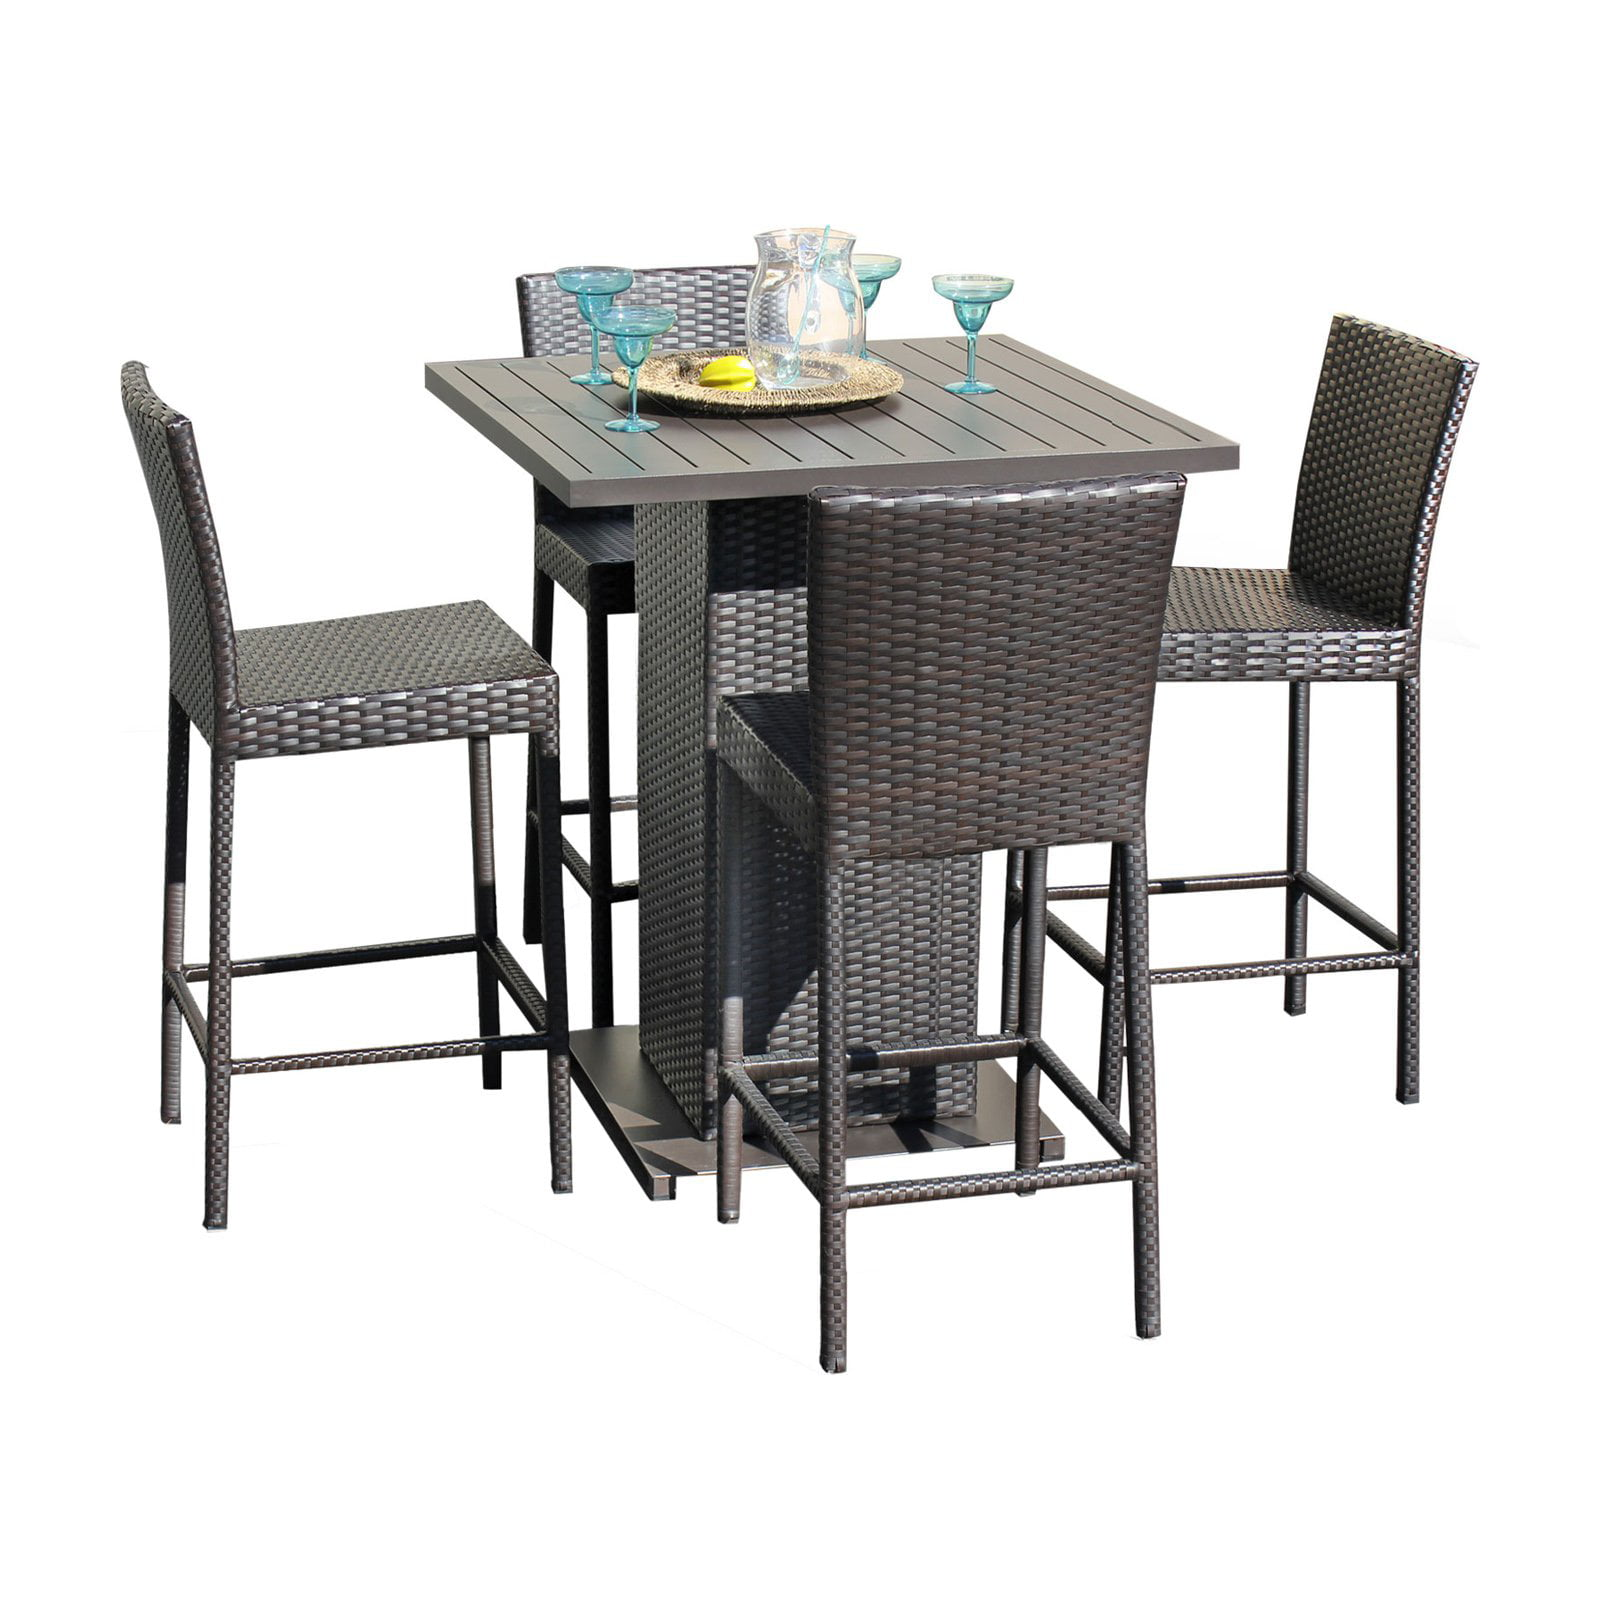 Charmant TK Classics Belle 5 Piece Wicker Bar Height Patio Dining Set